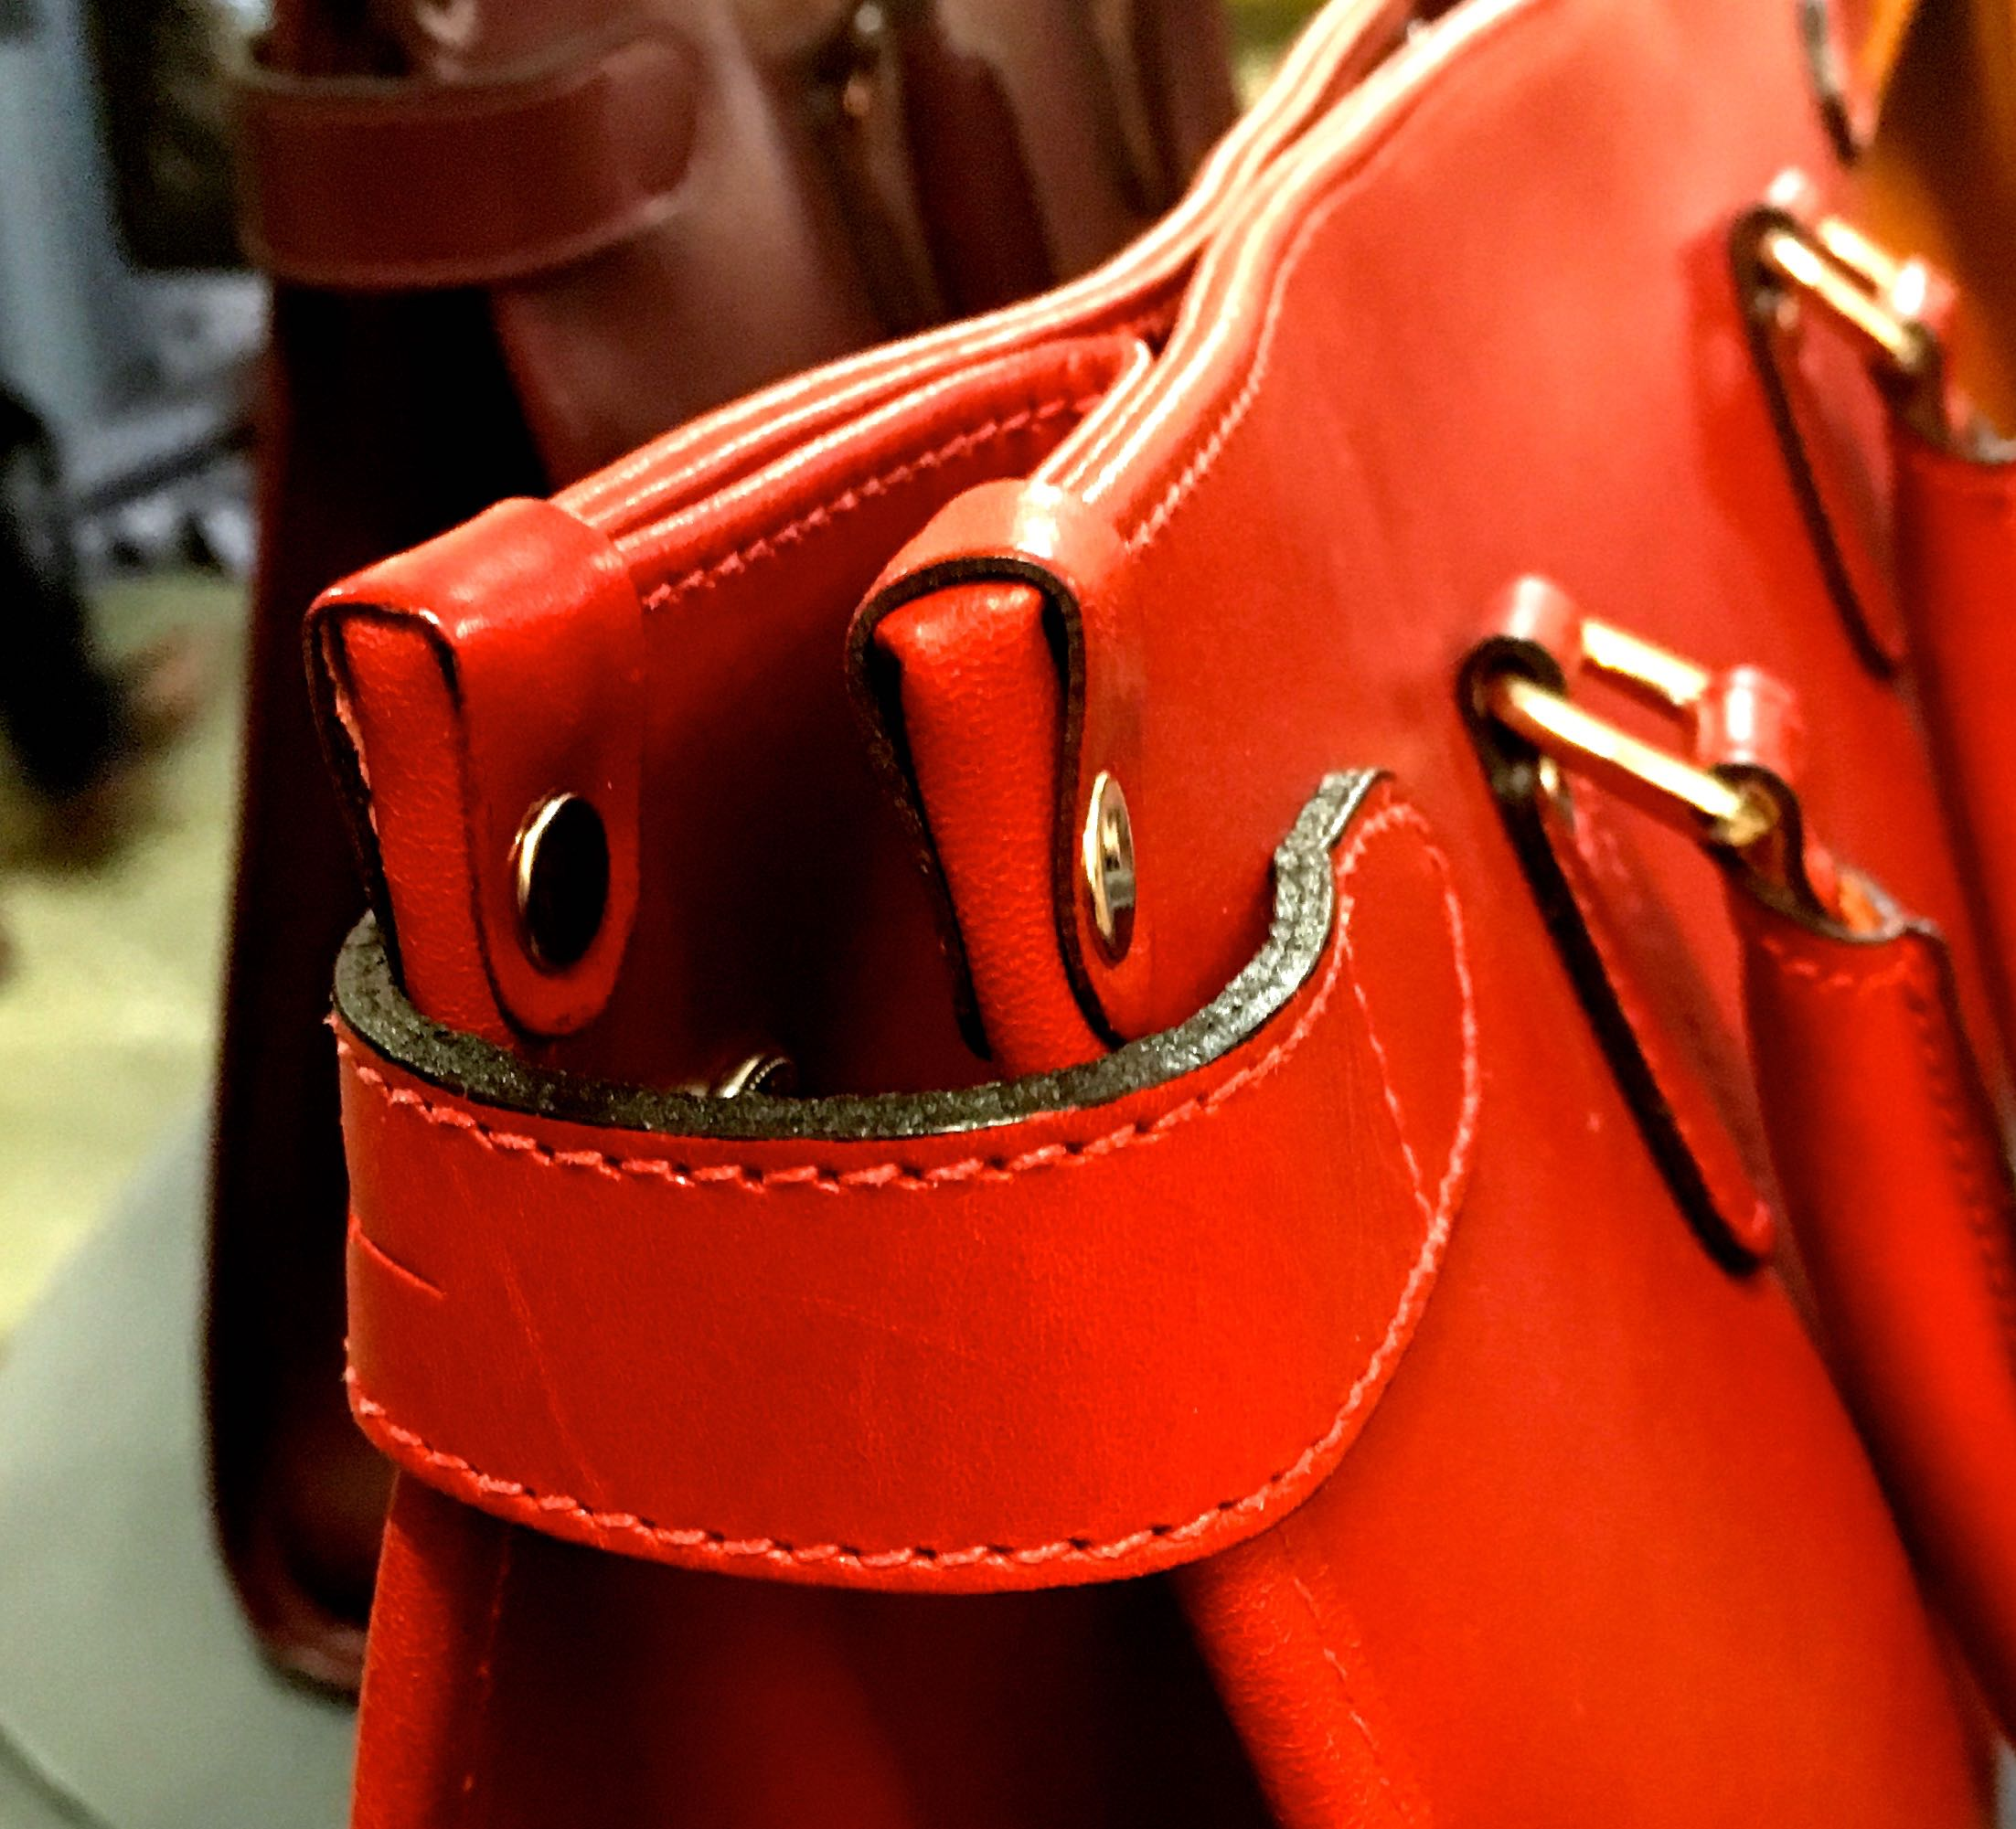 DETAILS OF THE KIMBOLTON TOTE